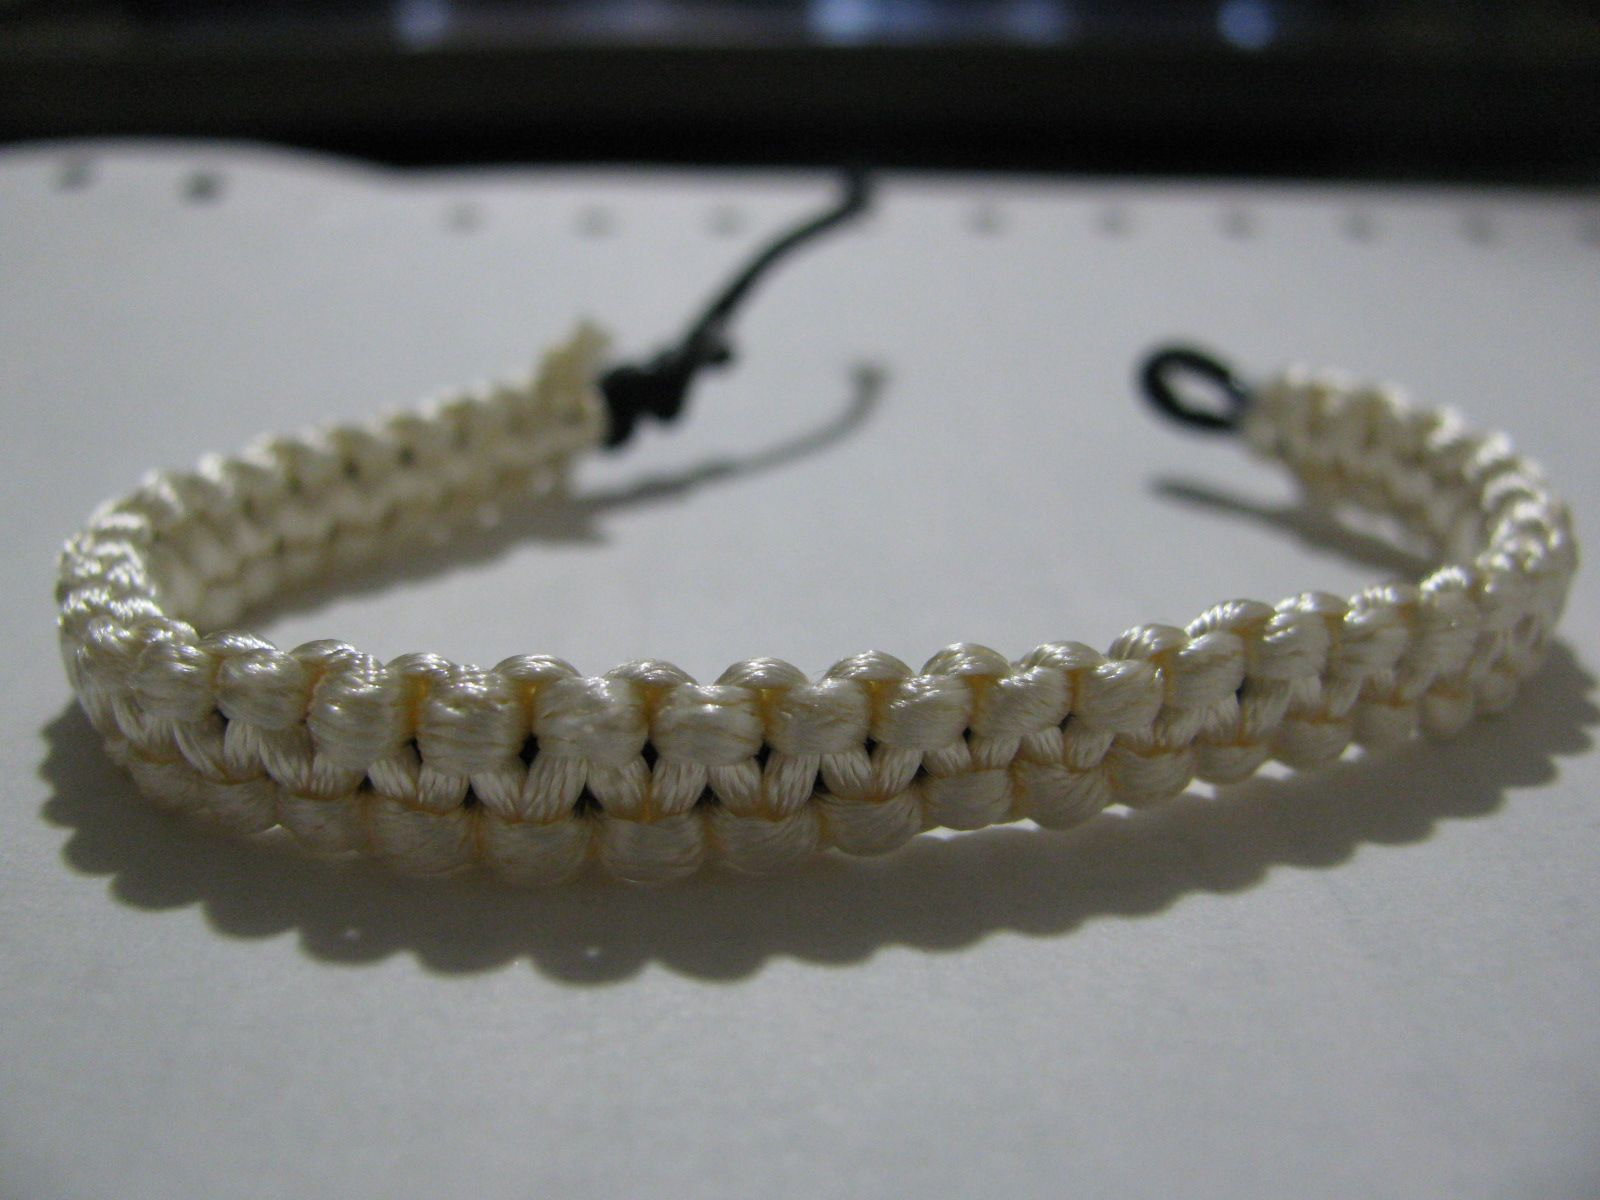 Mini Satin Paracord Bracelet Diy Paracord Bracelets Diy